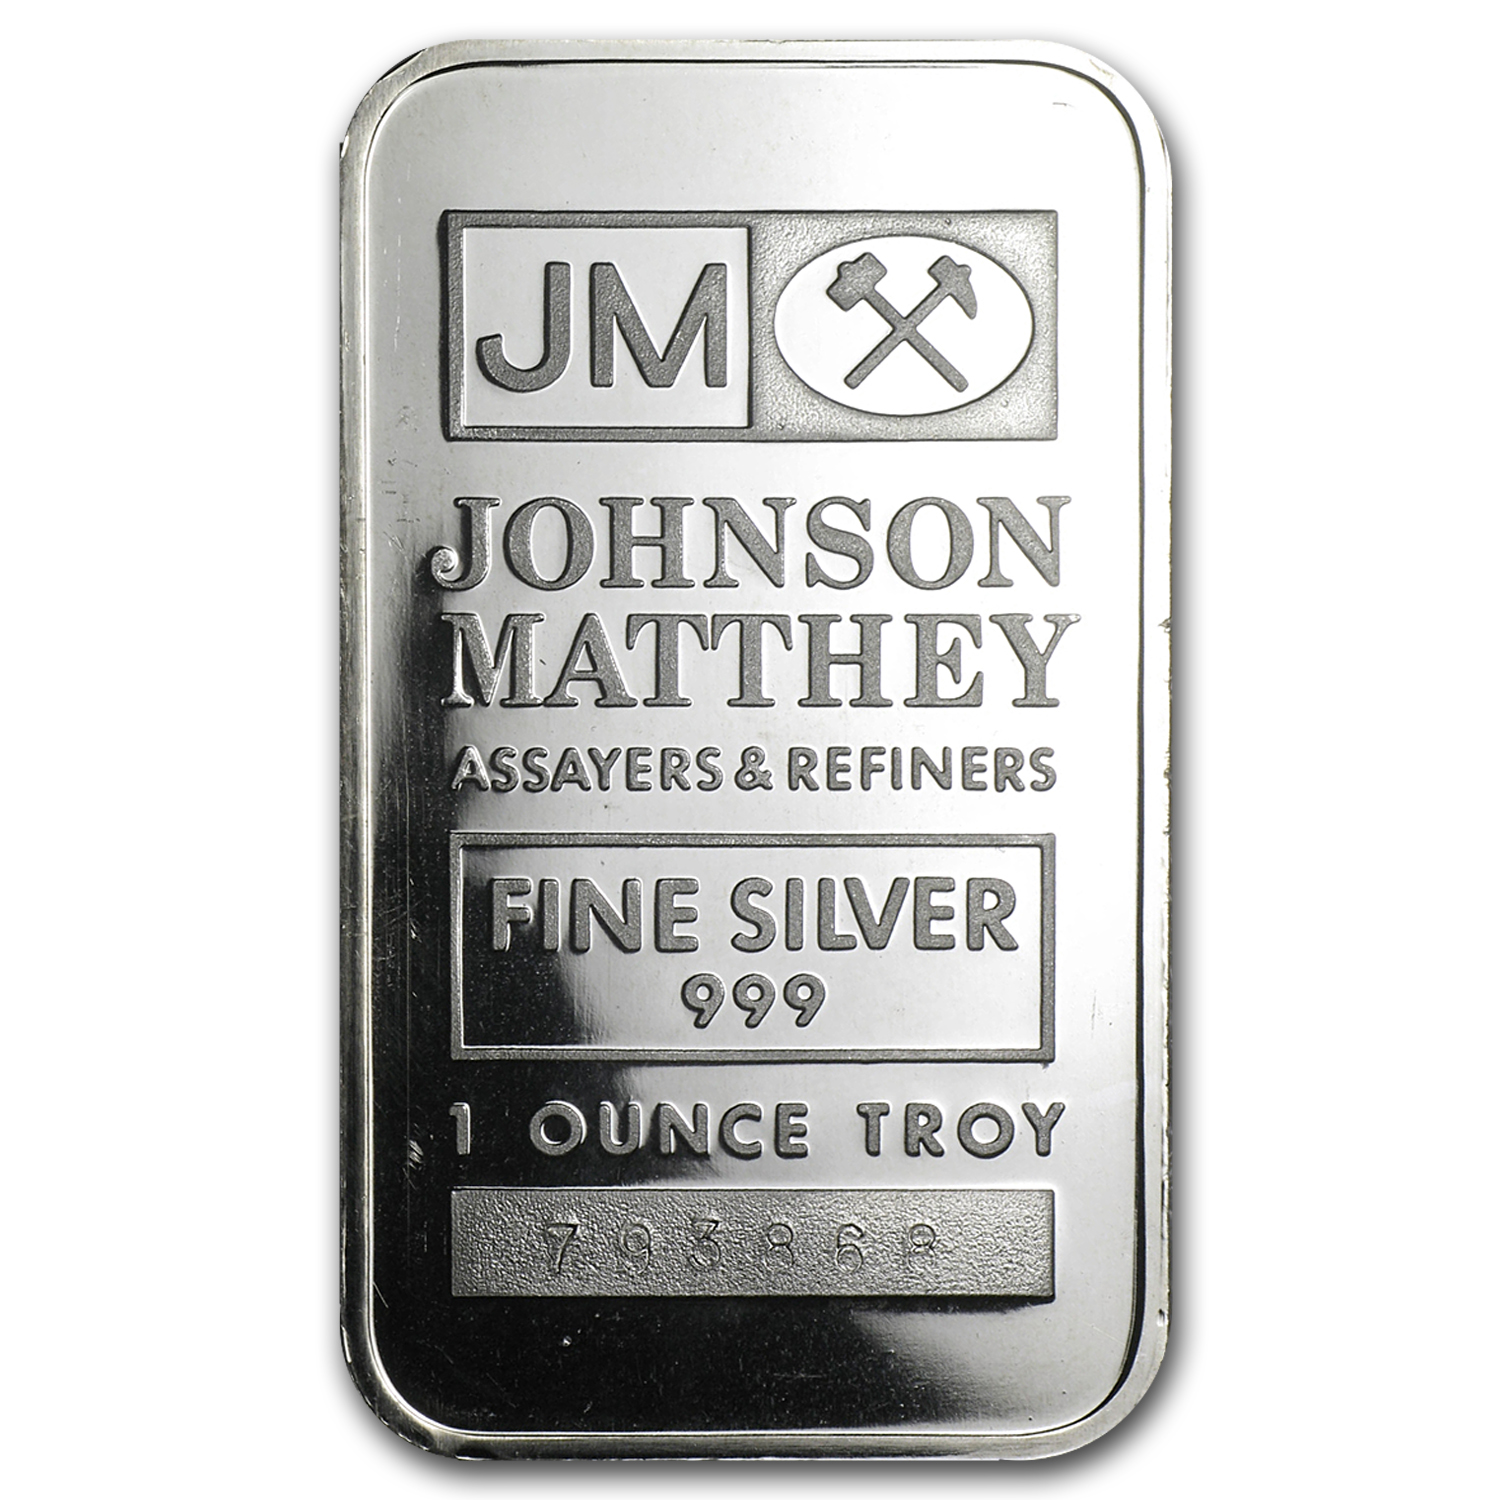 1 oz Silver Bar - Johnson Matthey (Secondary Market)